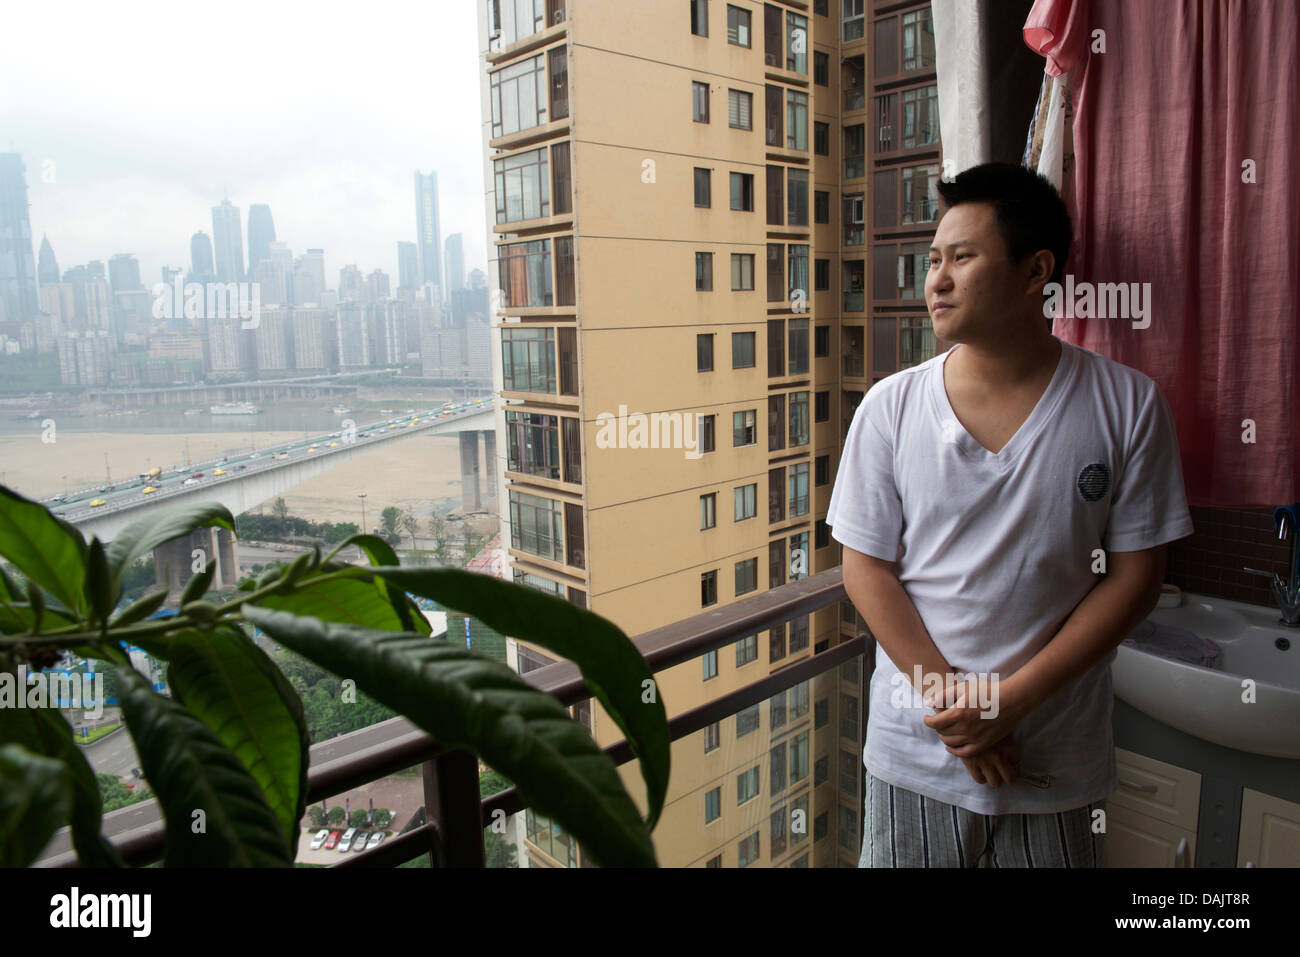 Chen Chao, 26 year old, overlooks Chongqing from the balcony of his new apartment in Chongqing, China. 09-May-2013 - Stock Image